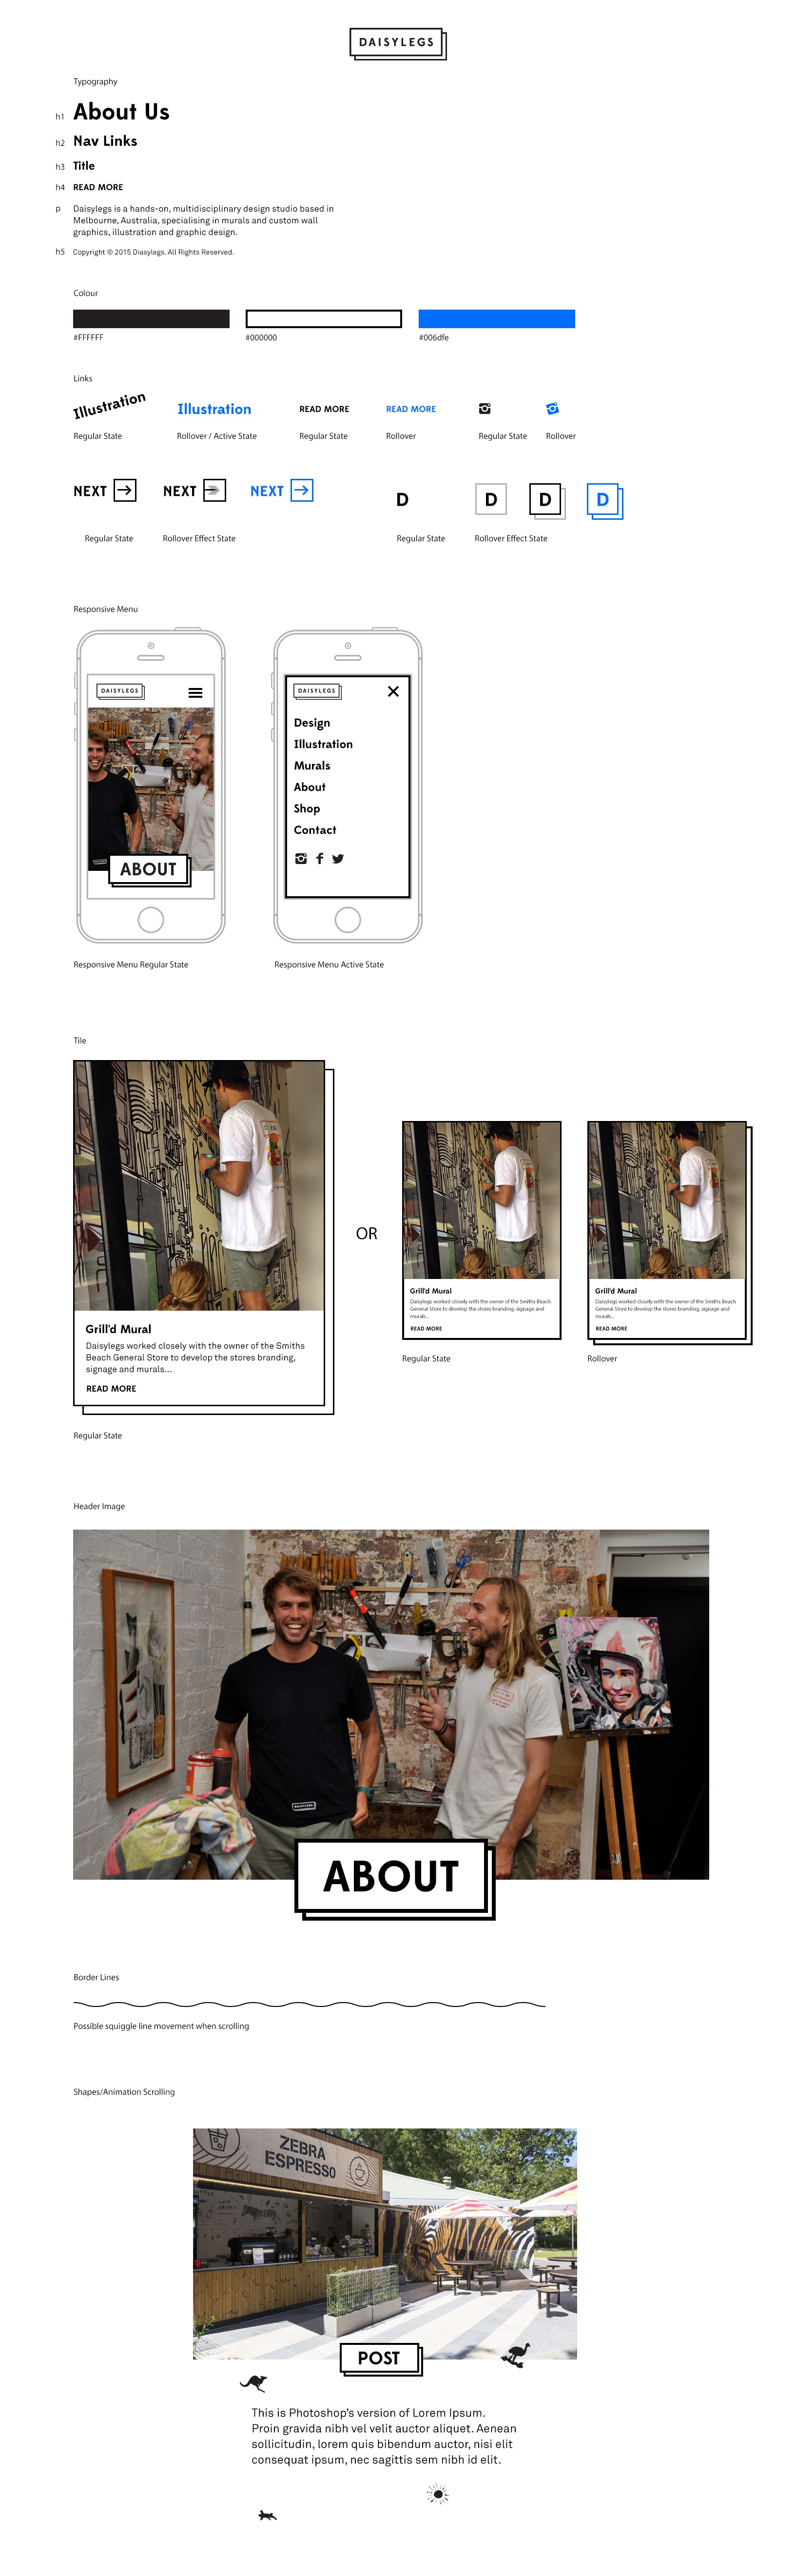 Dl style guide2